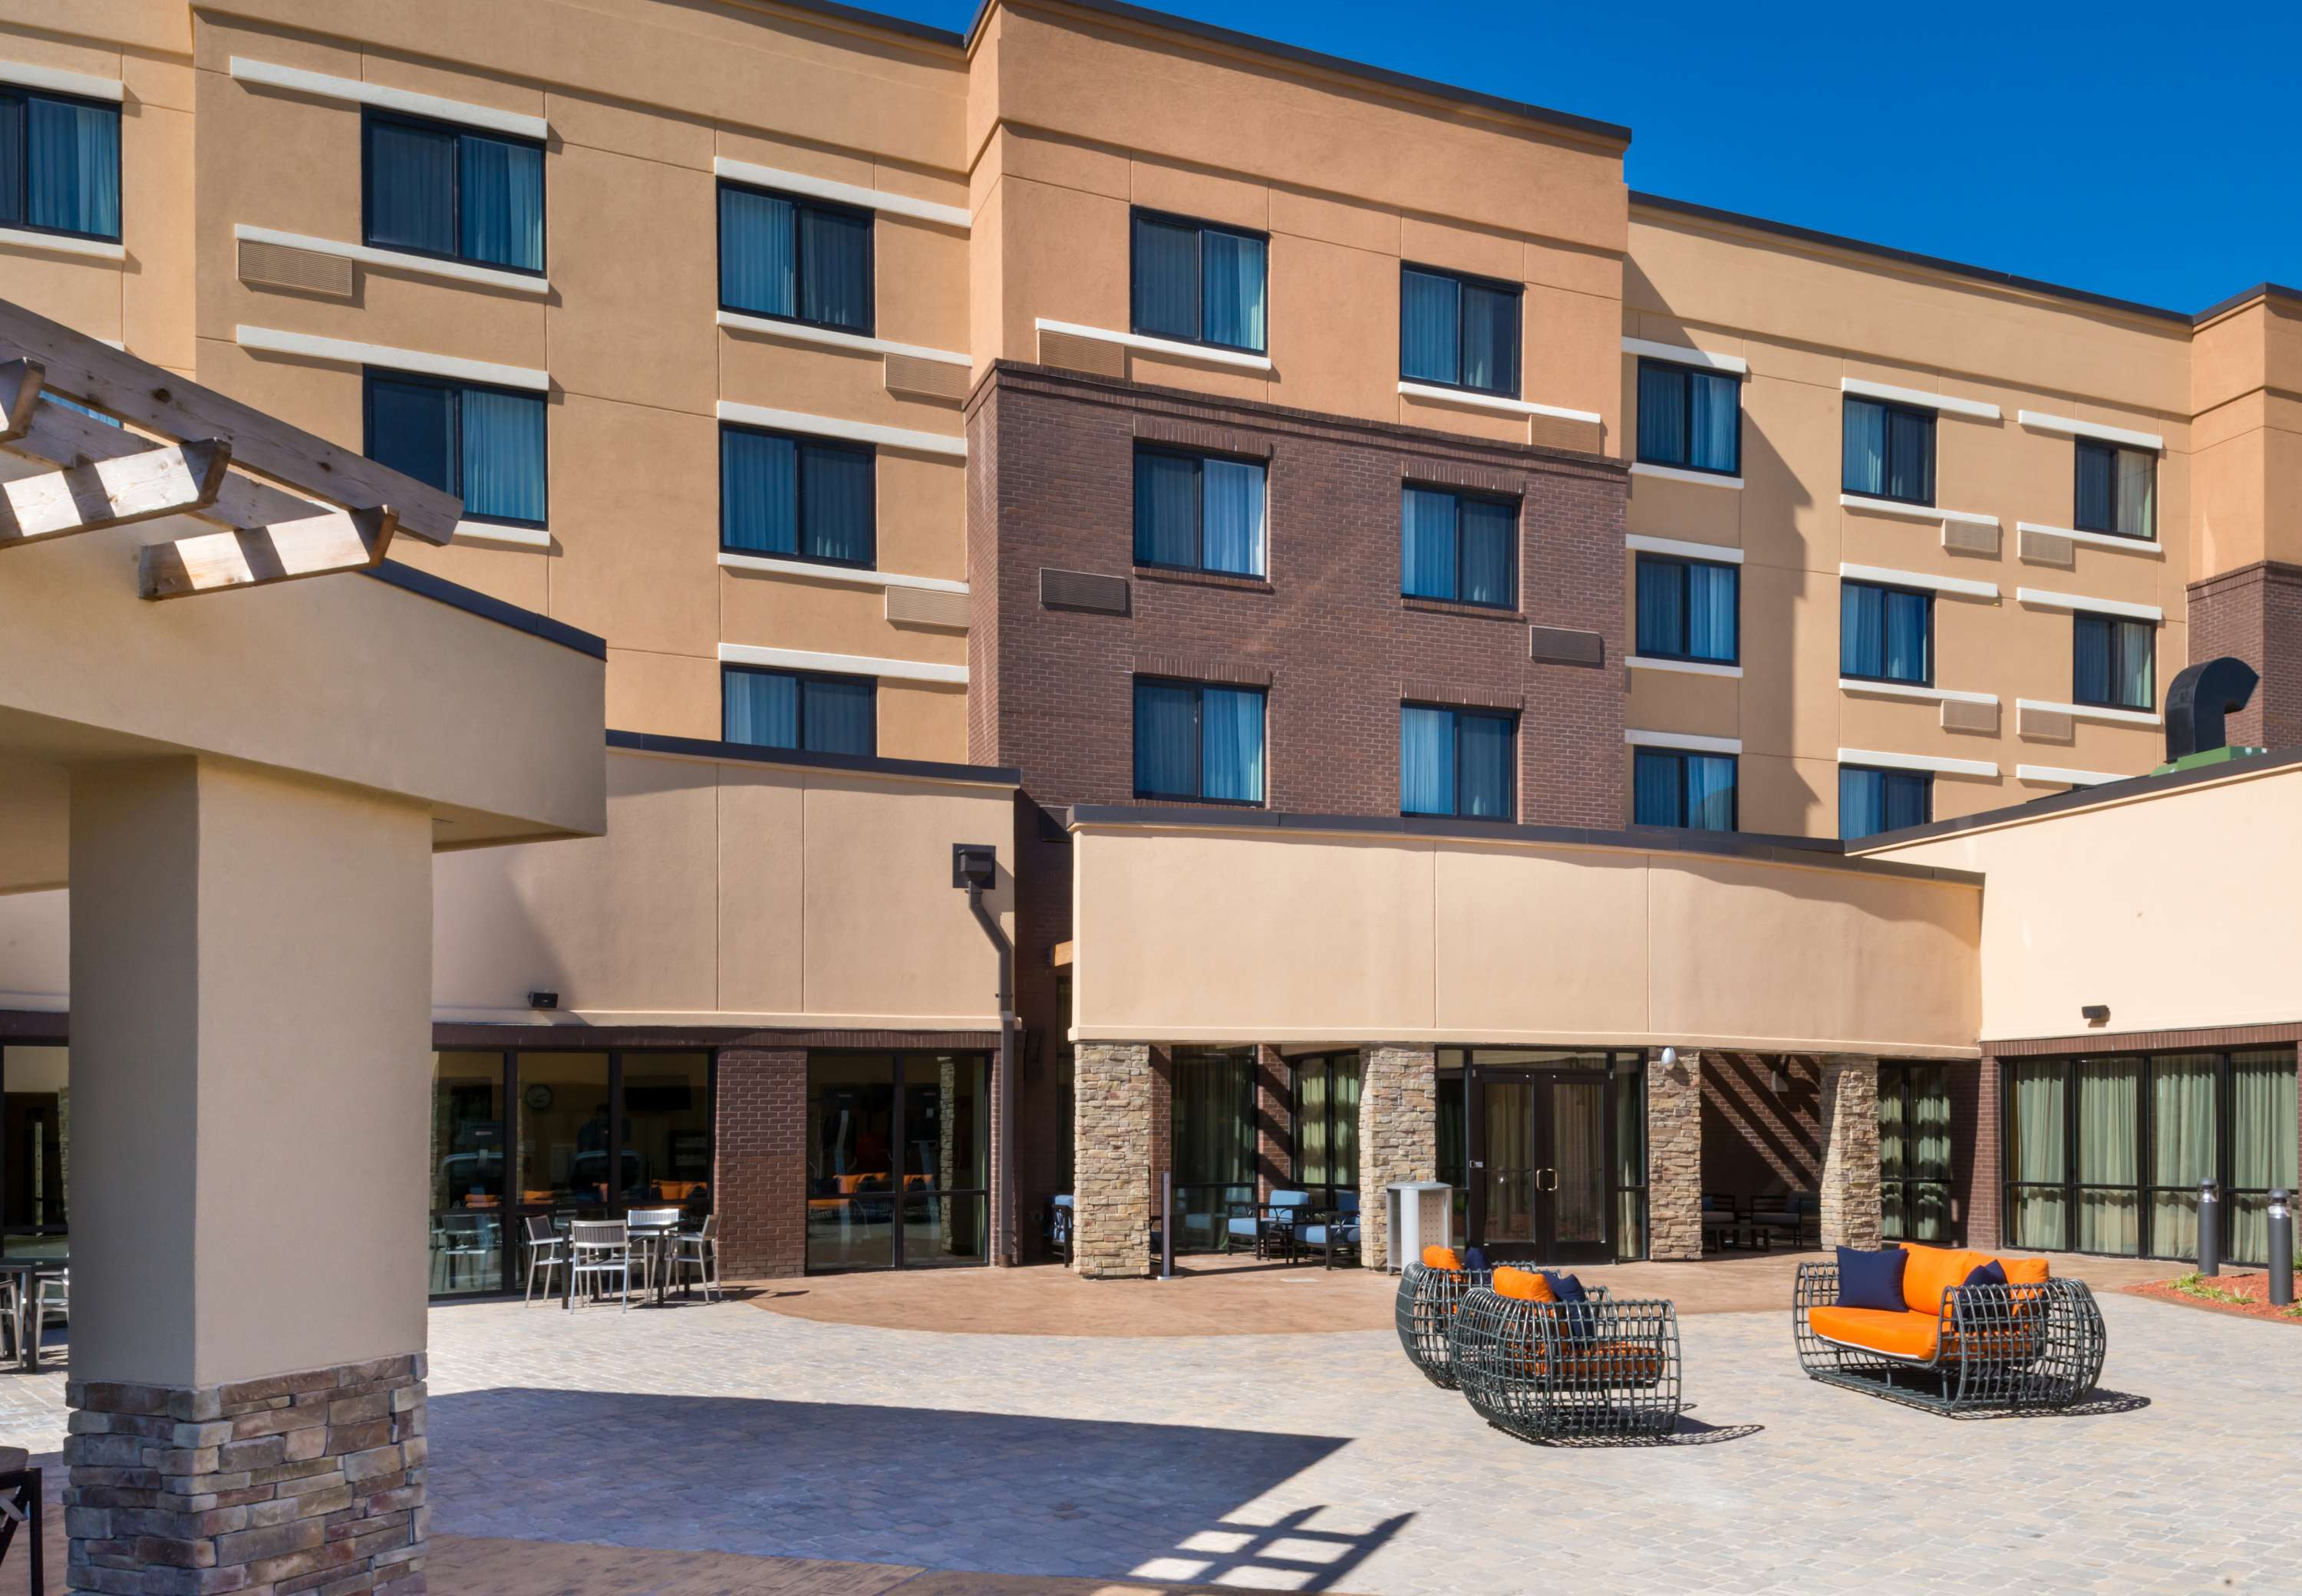 Courtyard by Marriott Jacksonville image 0